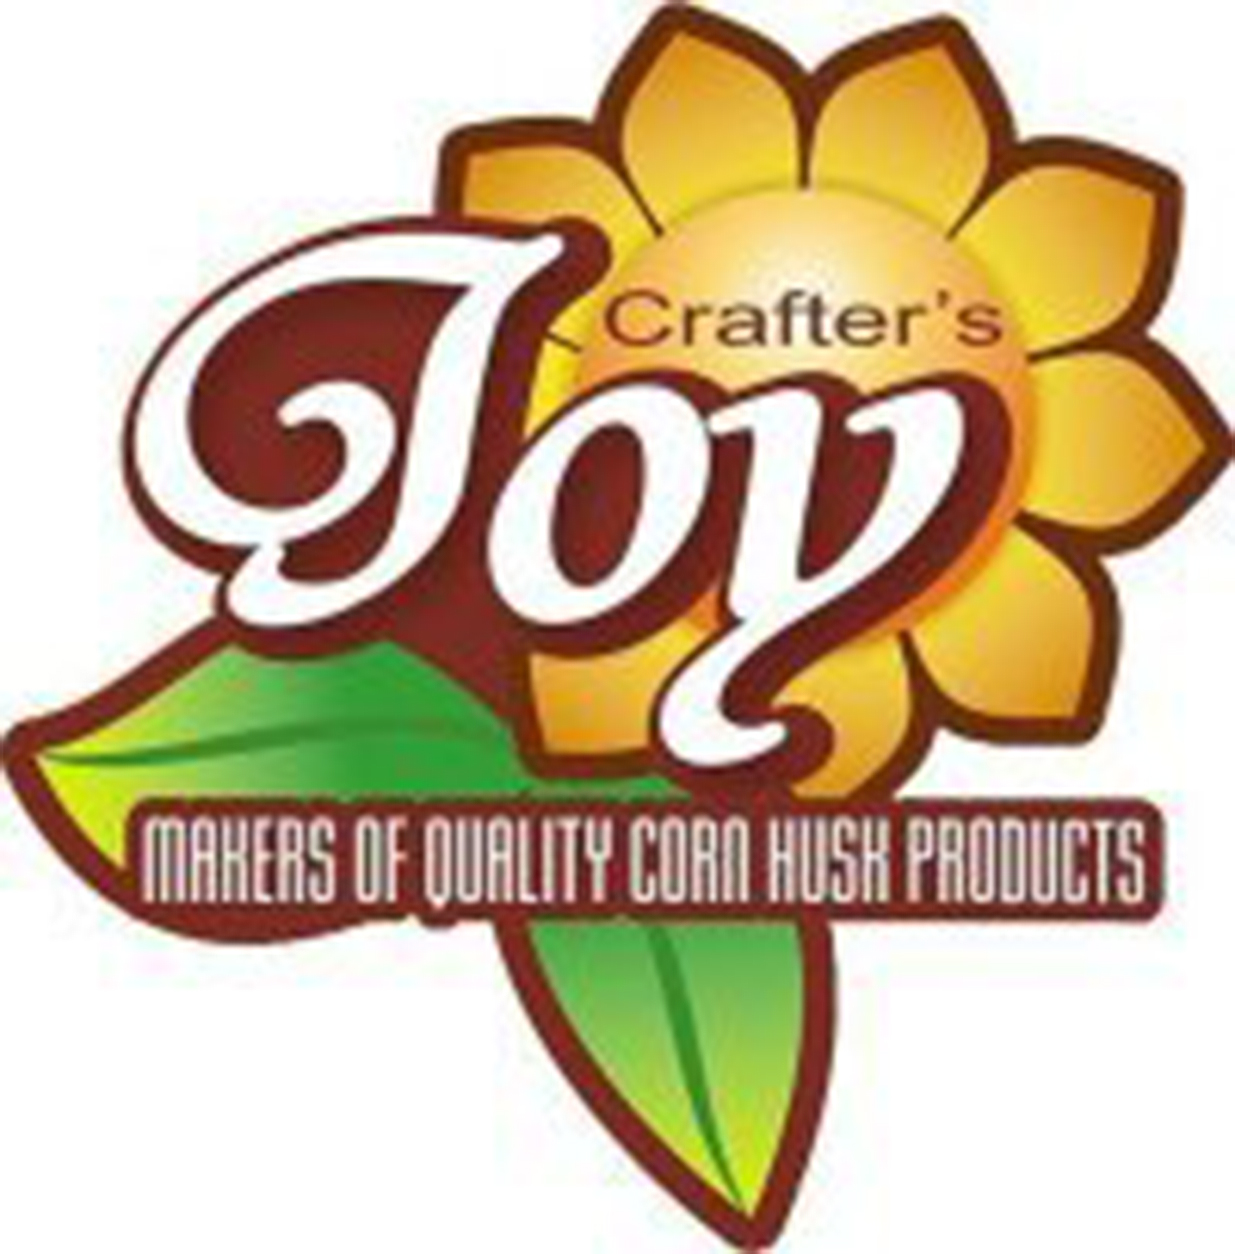 Crafter's Joy with Corn Crafters Association of Basista,Inc.